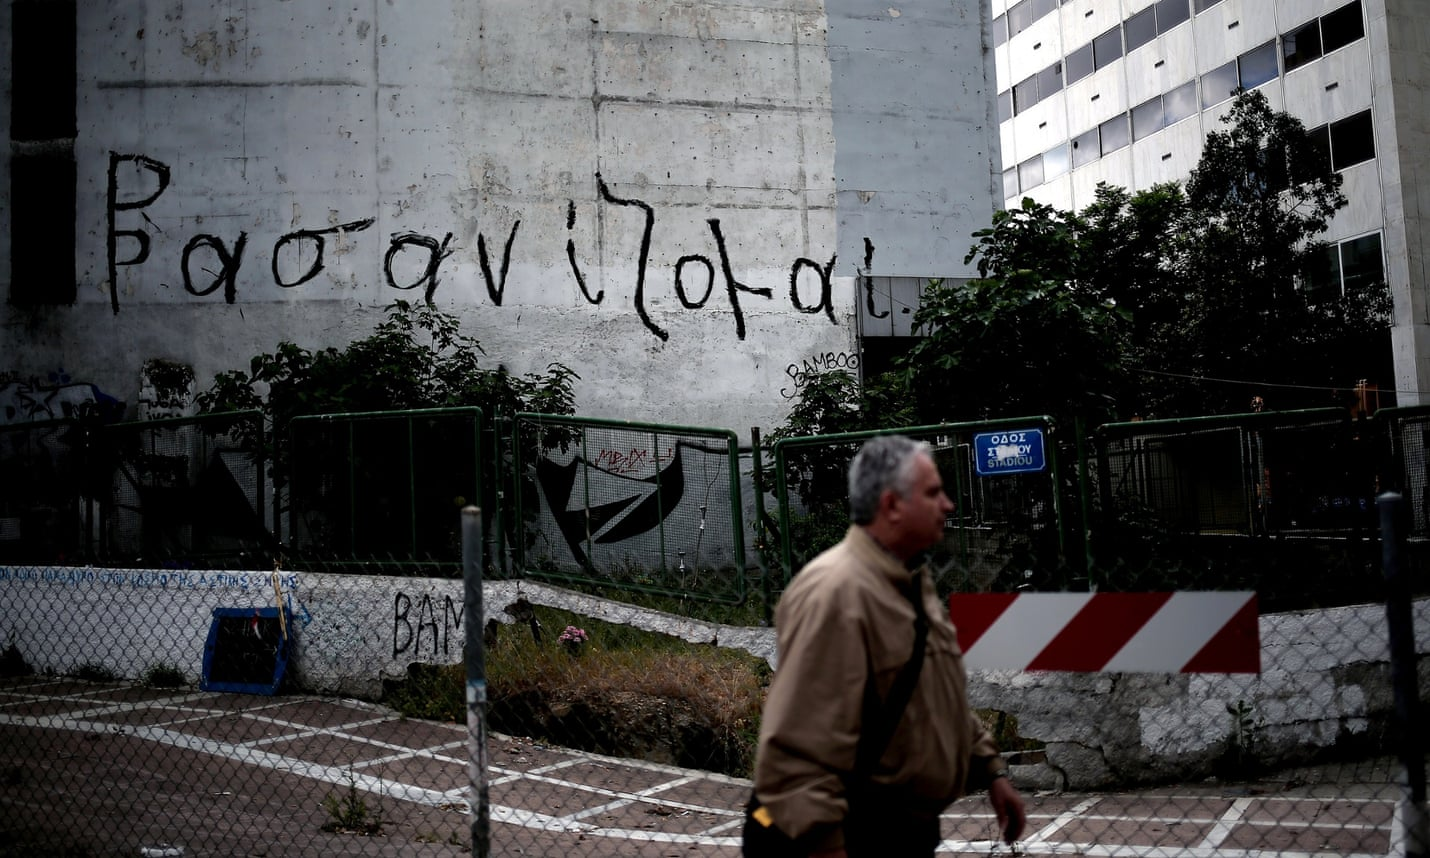 Graffiti that says 'I am suffering' on a building in Athens.